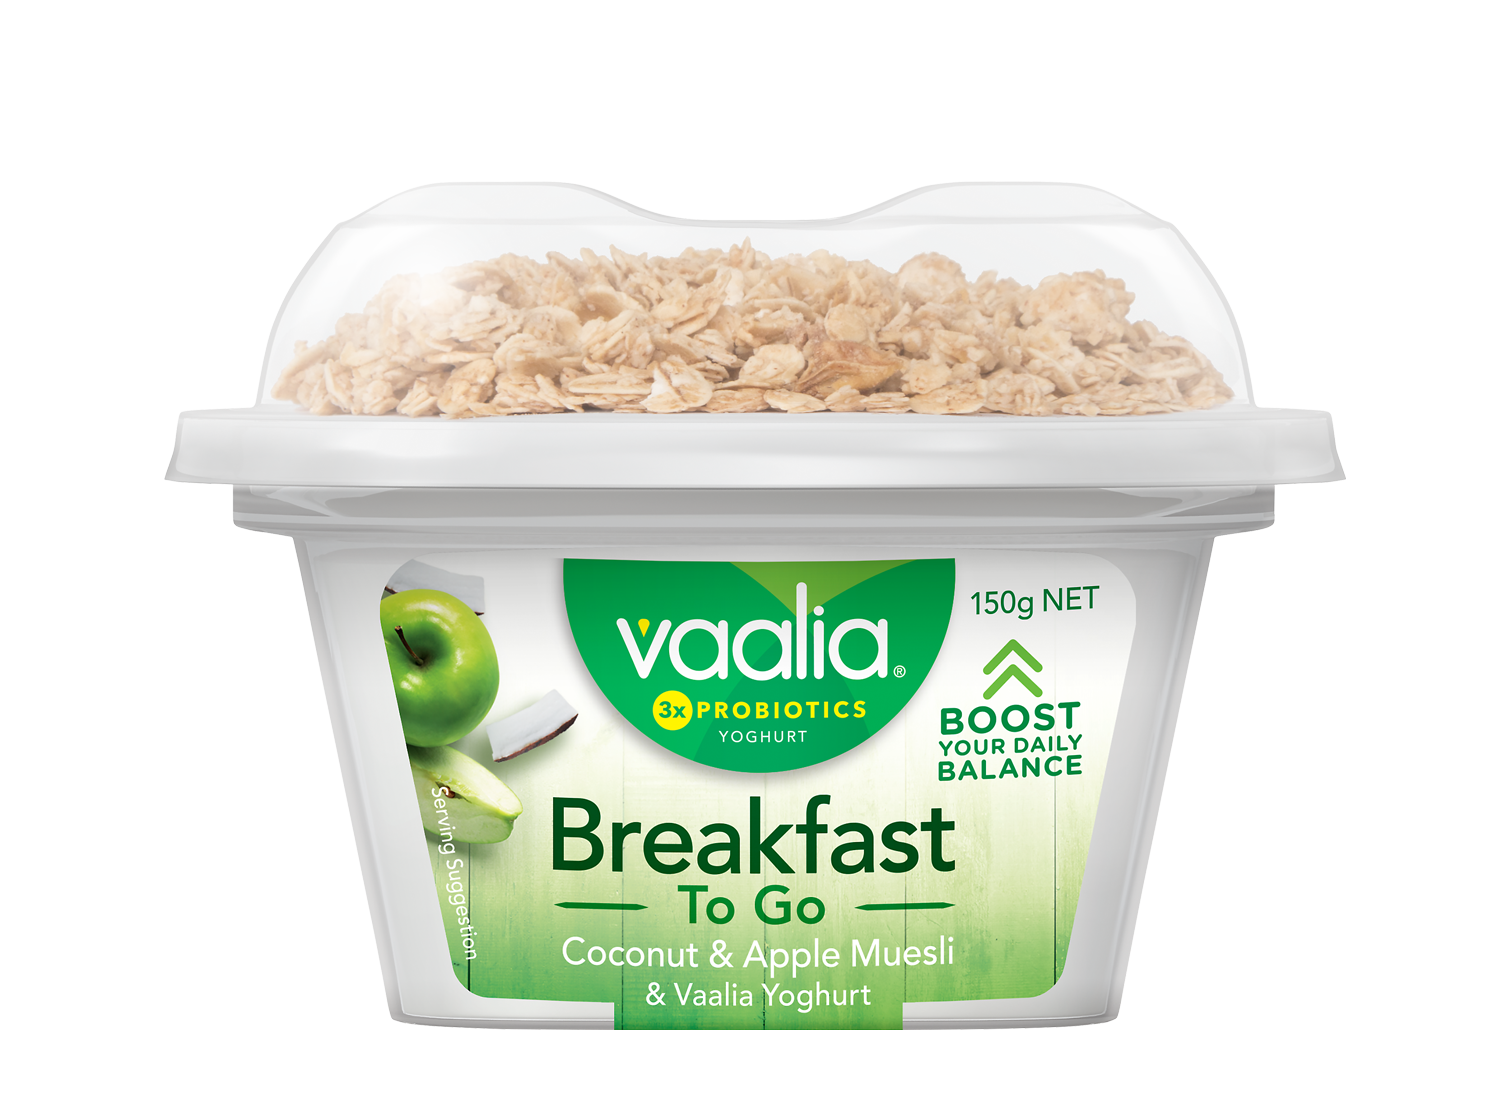 Vaalia Breakfast To Go 150g - Coconut Apple Muesli